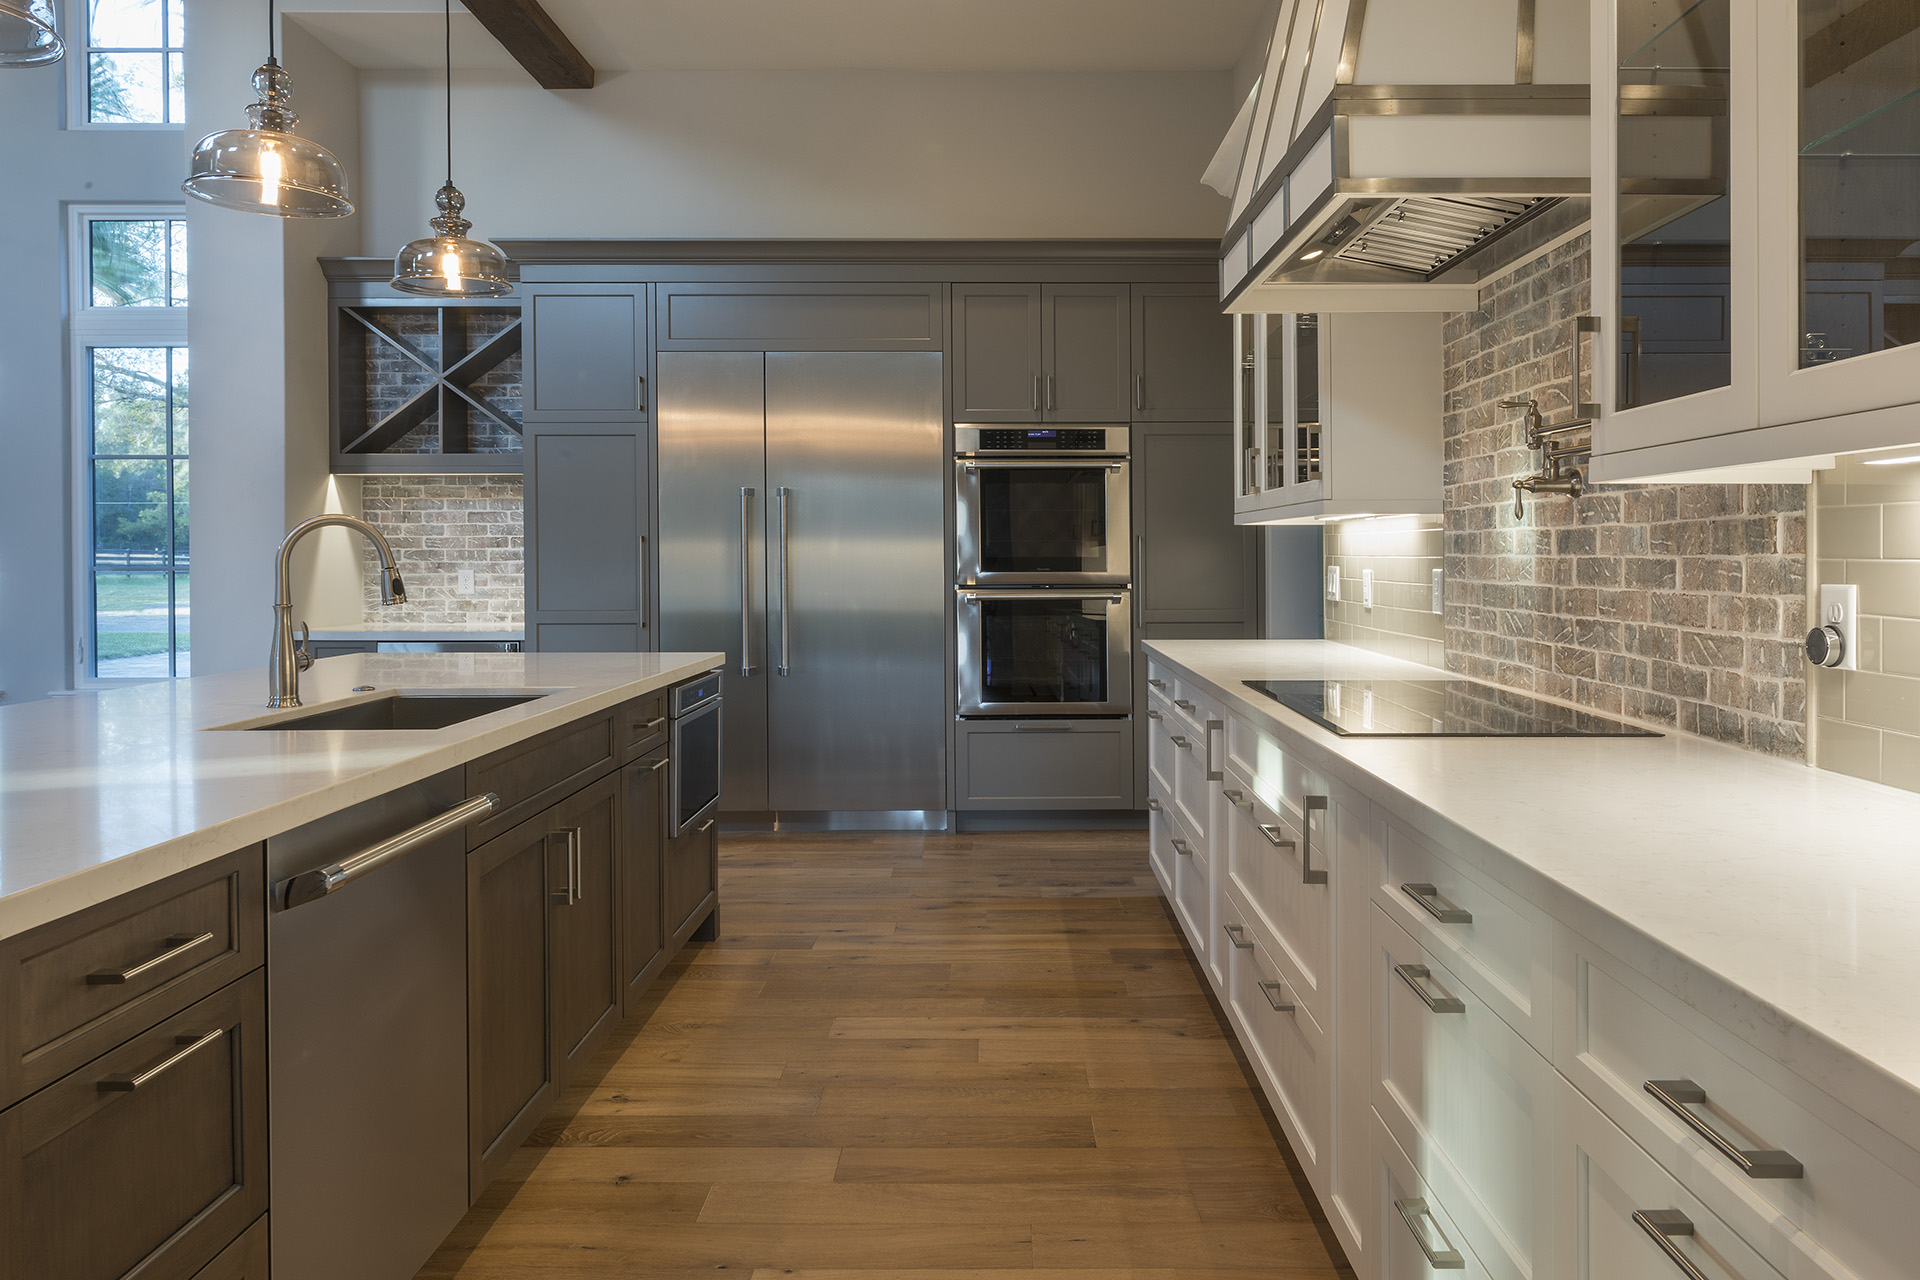 custom kitchen design in remodeled home by Einheit custom home builders